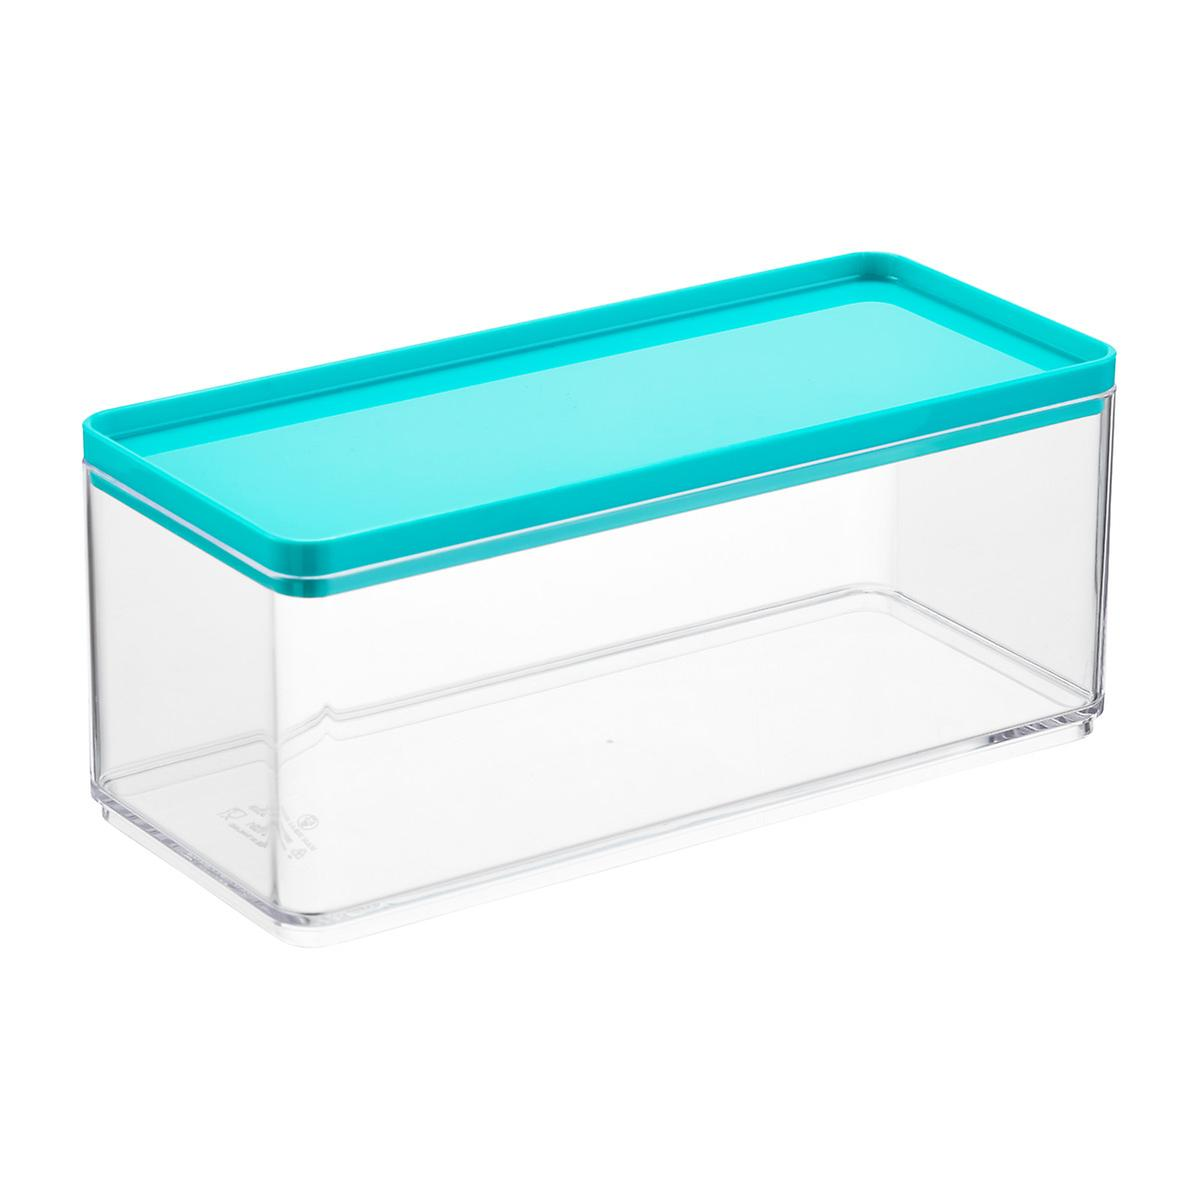 Stackable rectangle clear containers with teal lids the for Clear bathroom containers